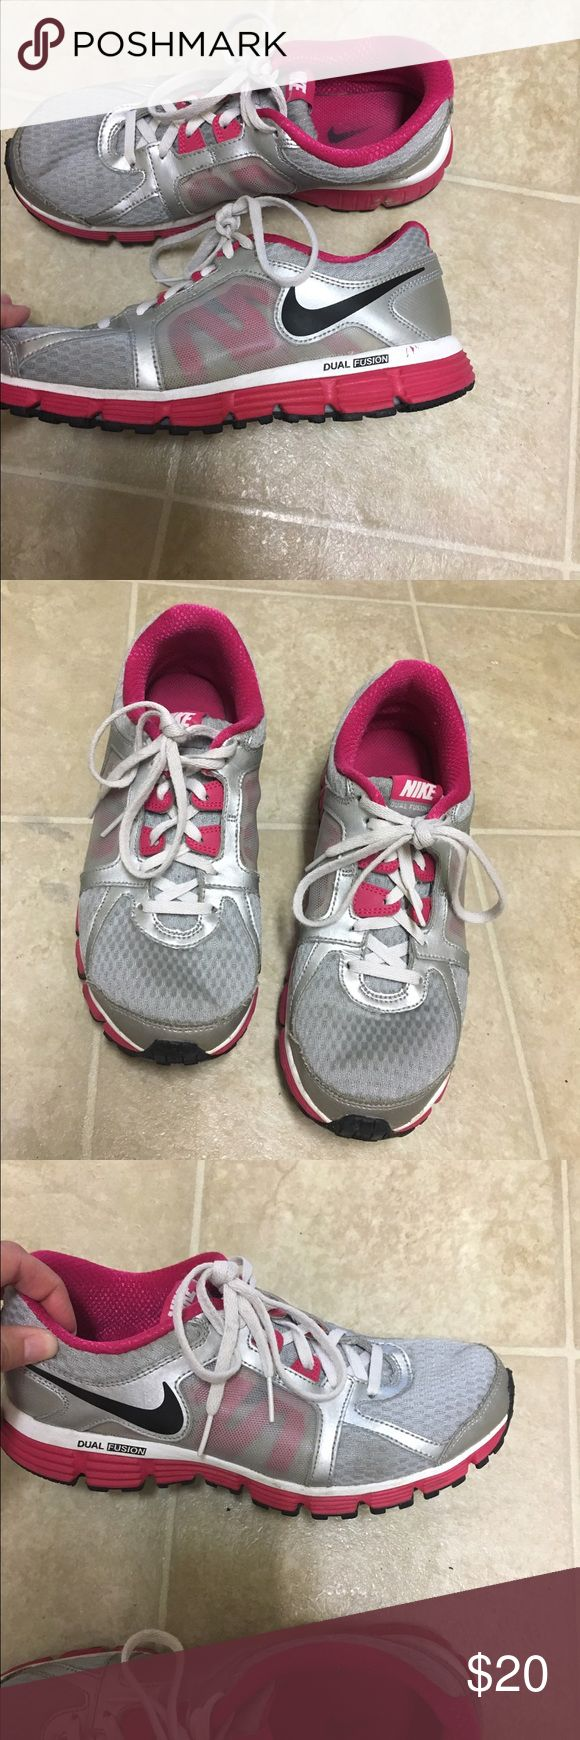 Nike shoes size 6 Nike shoes size 6 . Used but still have life left . They are gray pink and black . Nike Shoes Athletic Shoes